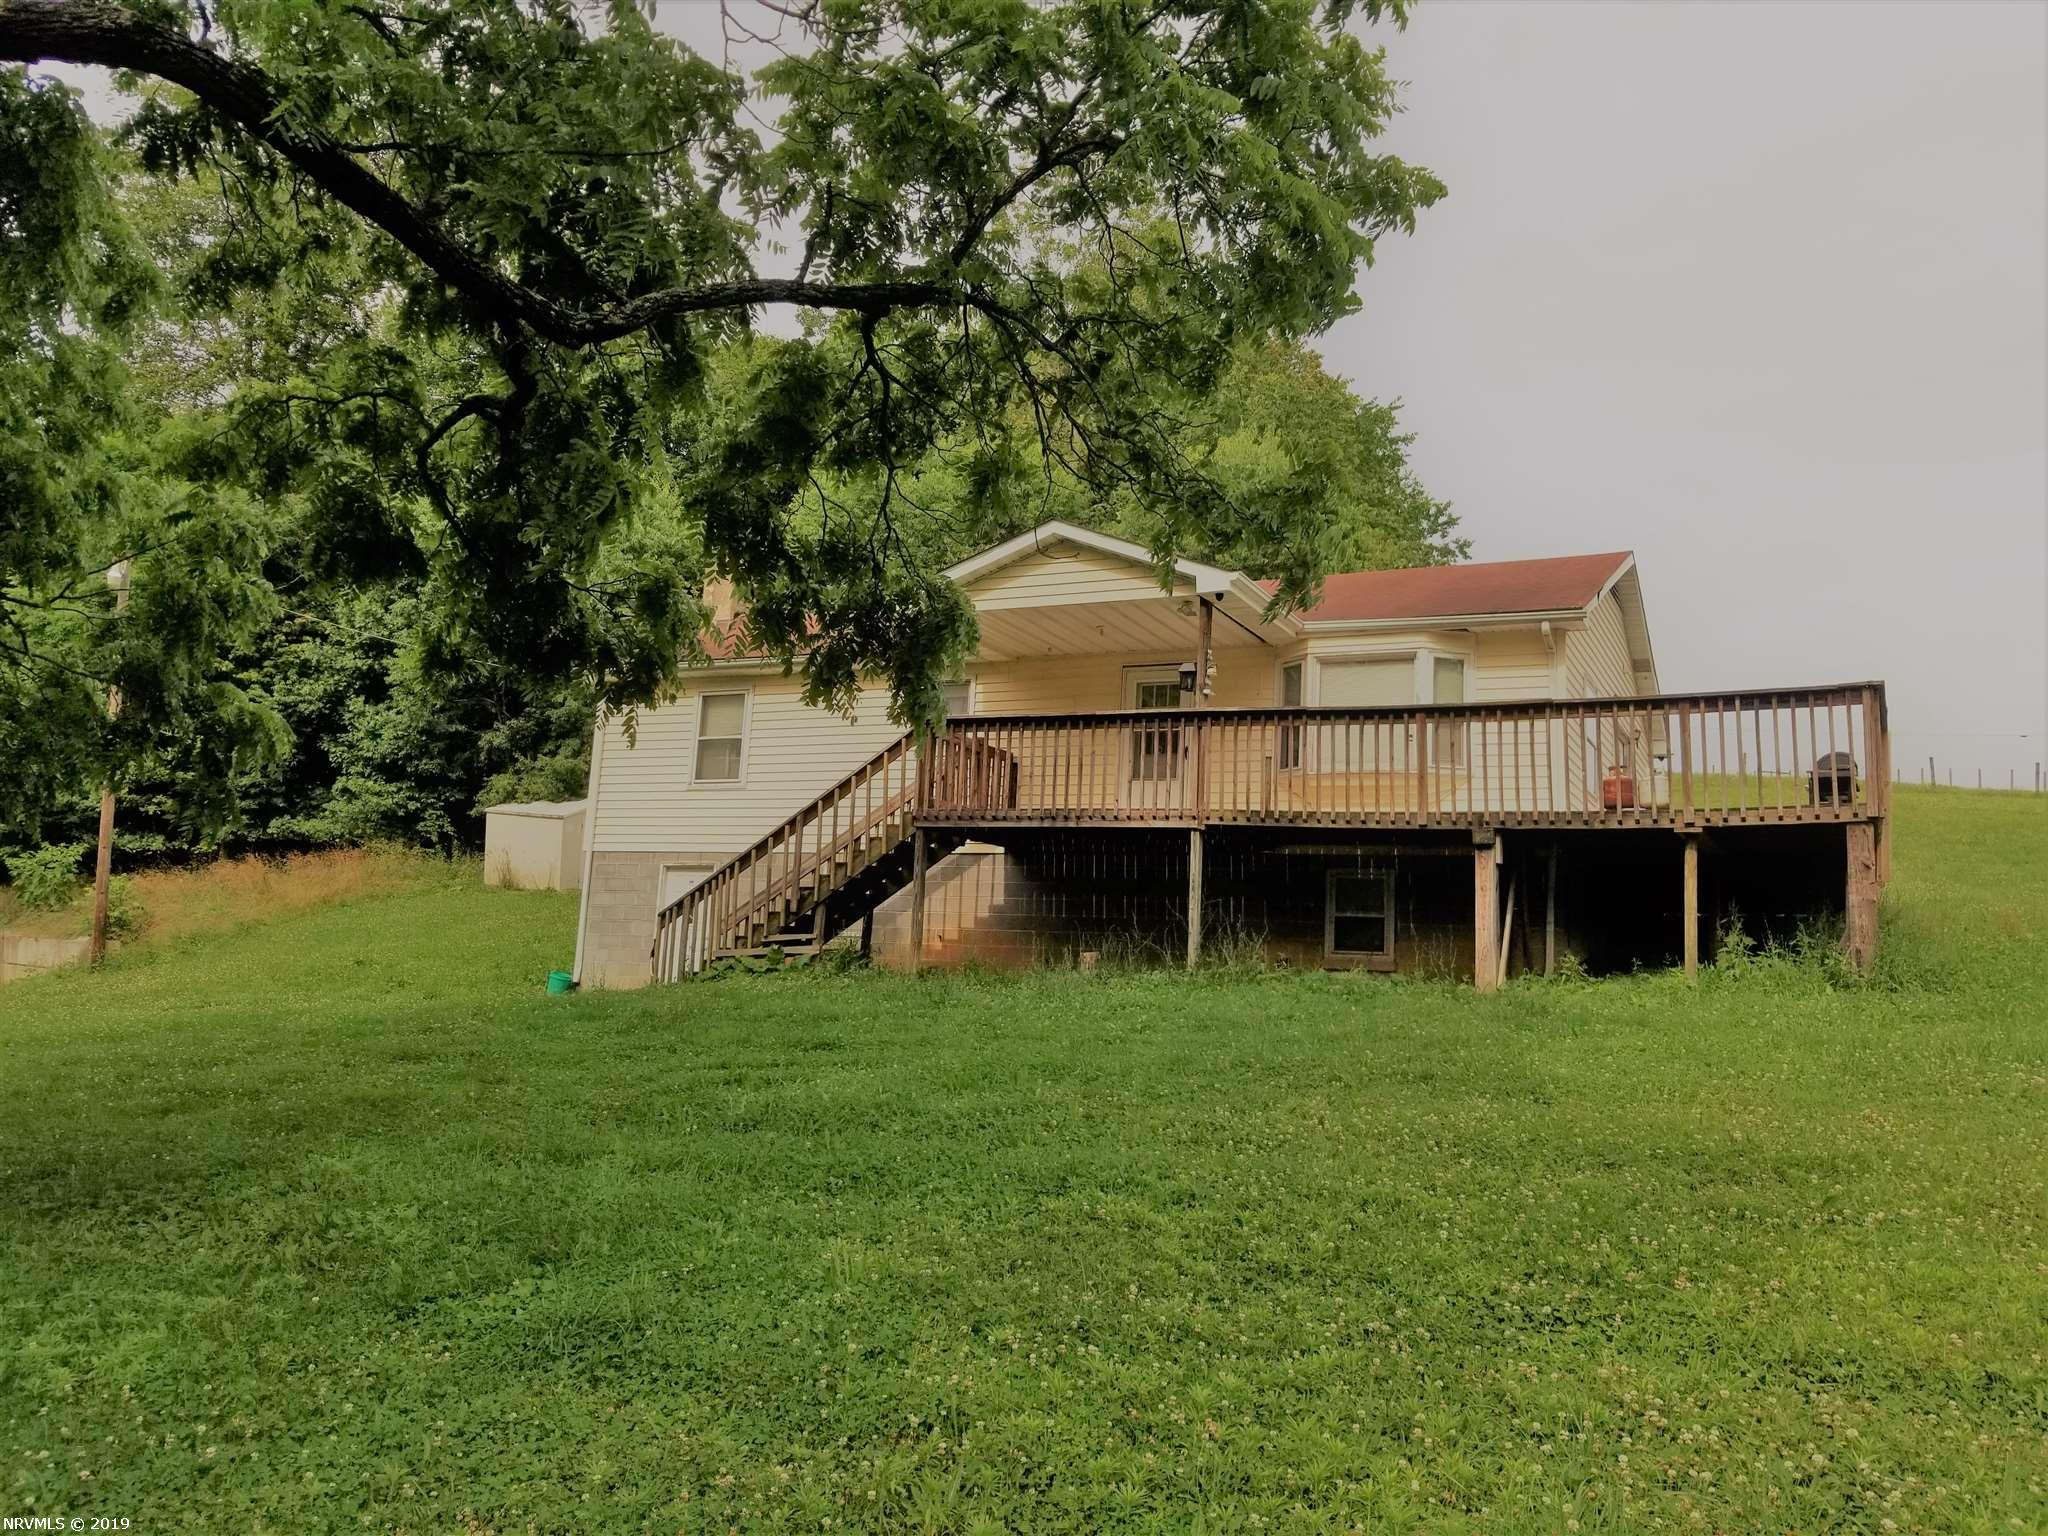 A must-see property! This is a wonderful place for rest and relaxation with beautiful views in the country after a long day. A little TLC you can transform this home into your little country paradise.